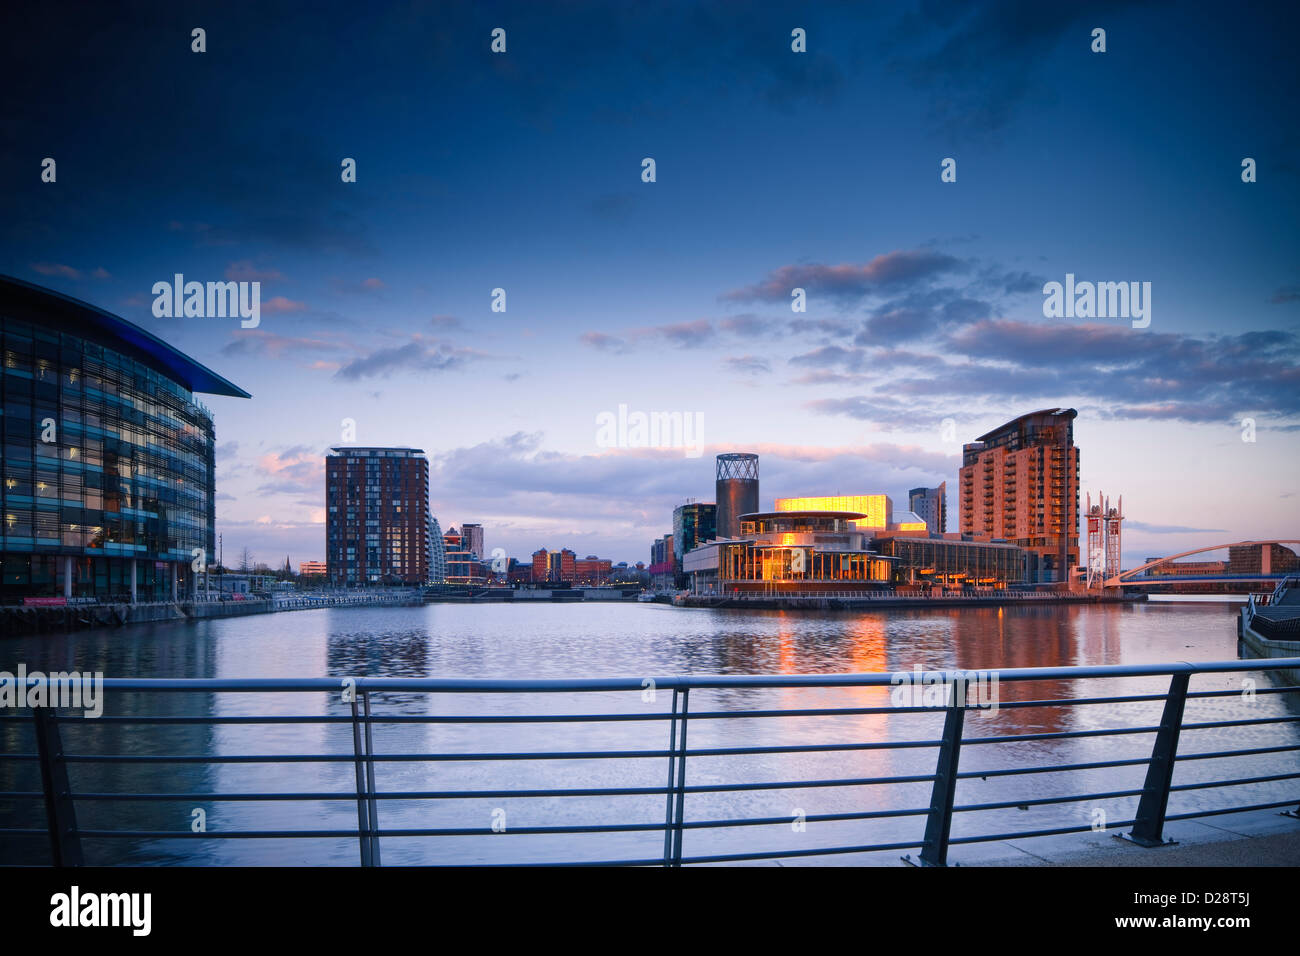 Salford Quays Greater Manchester Lancashire Inghilterra Immagini Stock